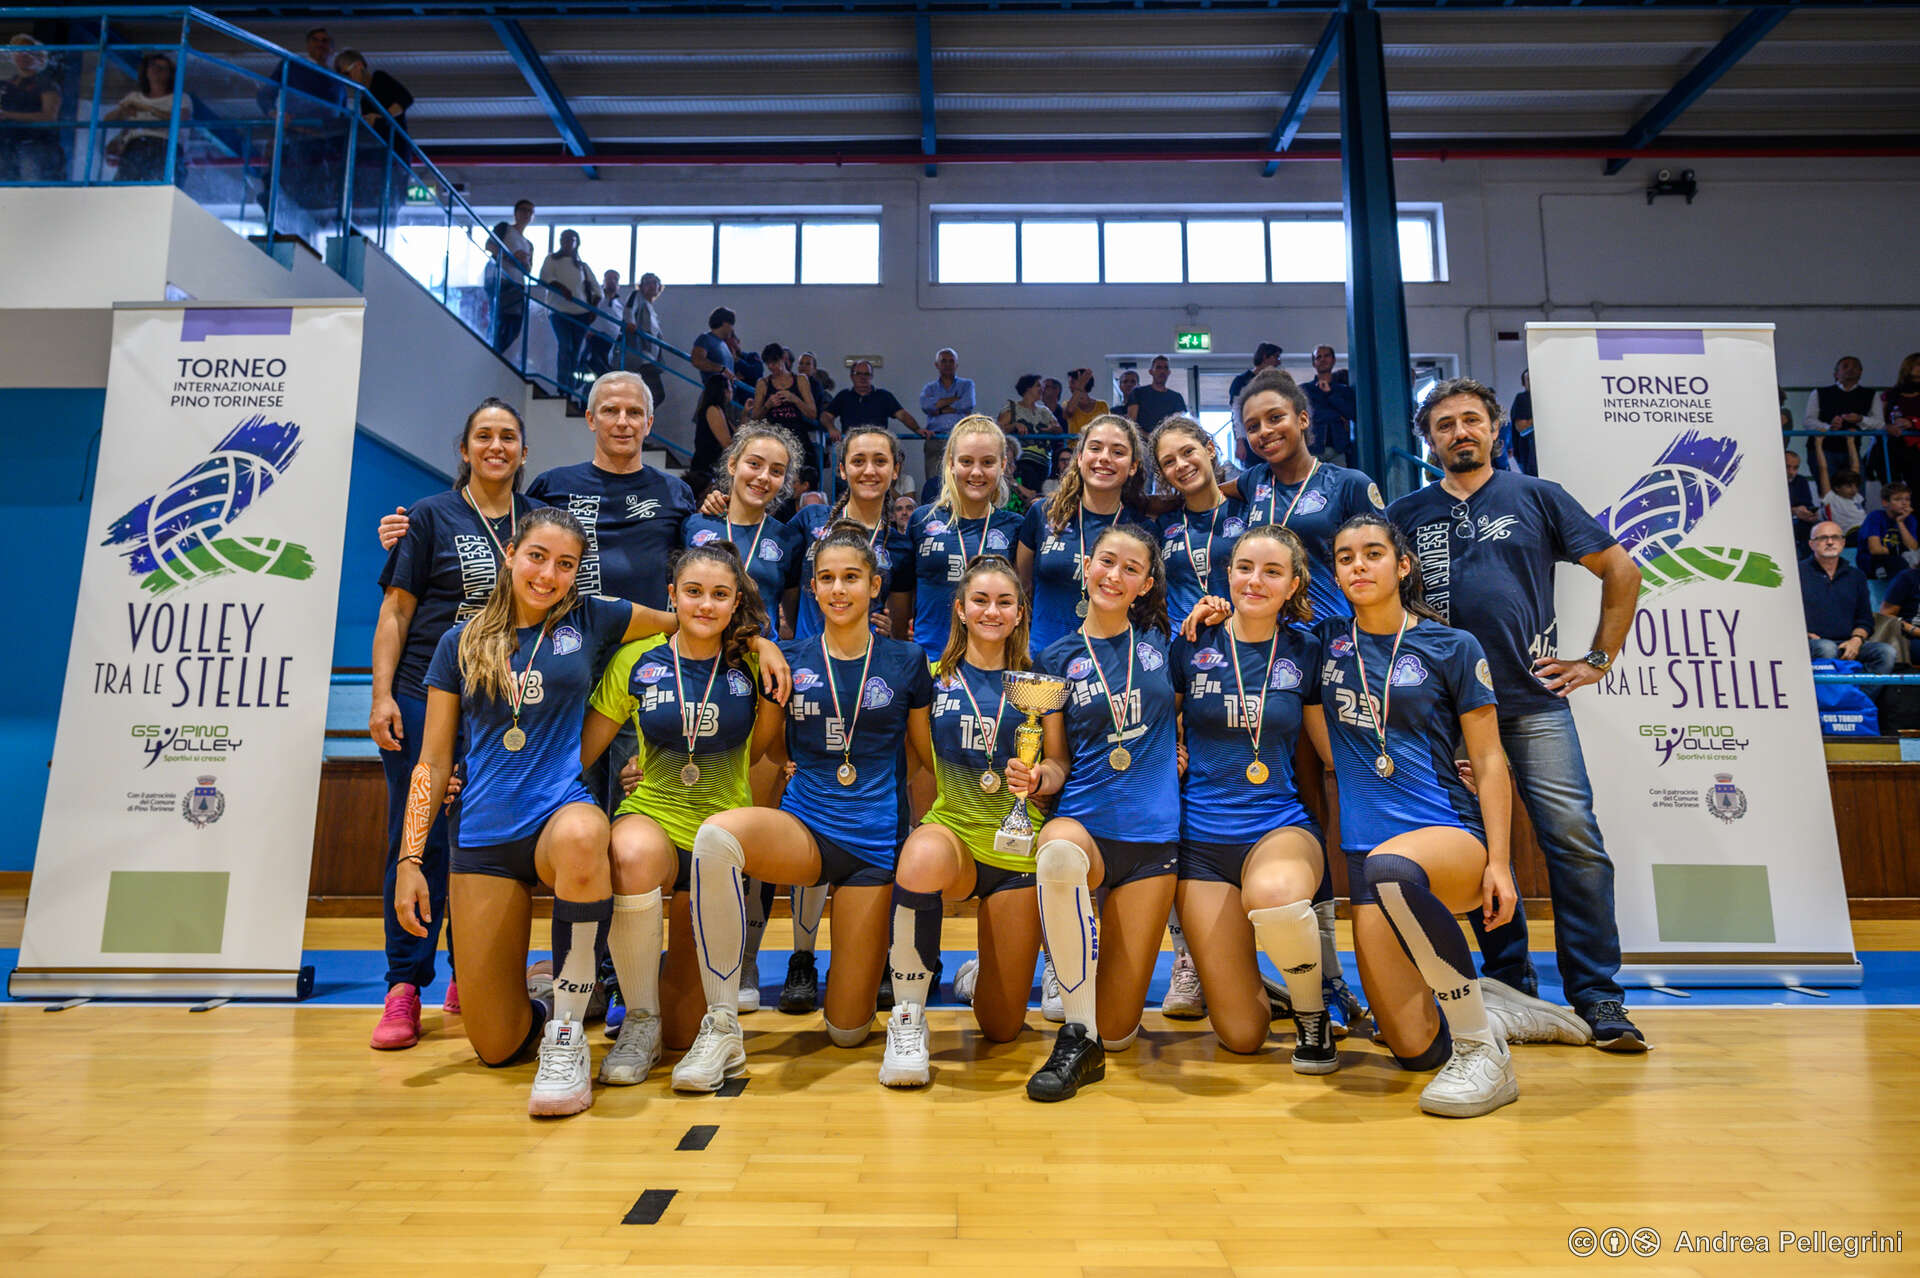 La vincente 2019: ISIL Volley Almese Massi 2004